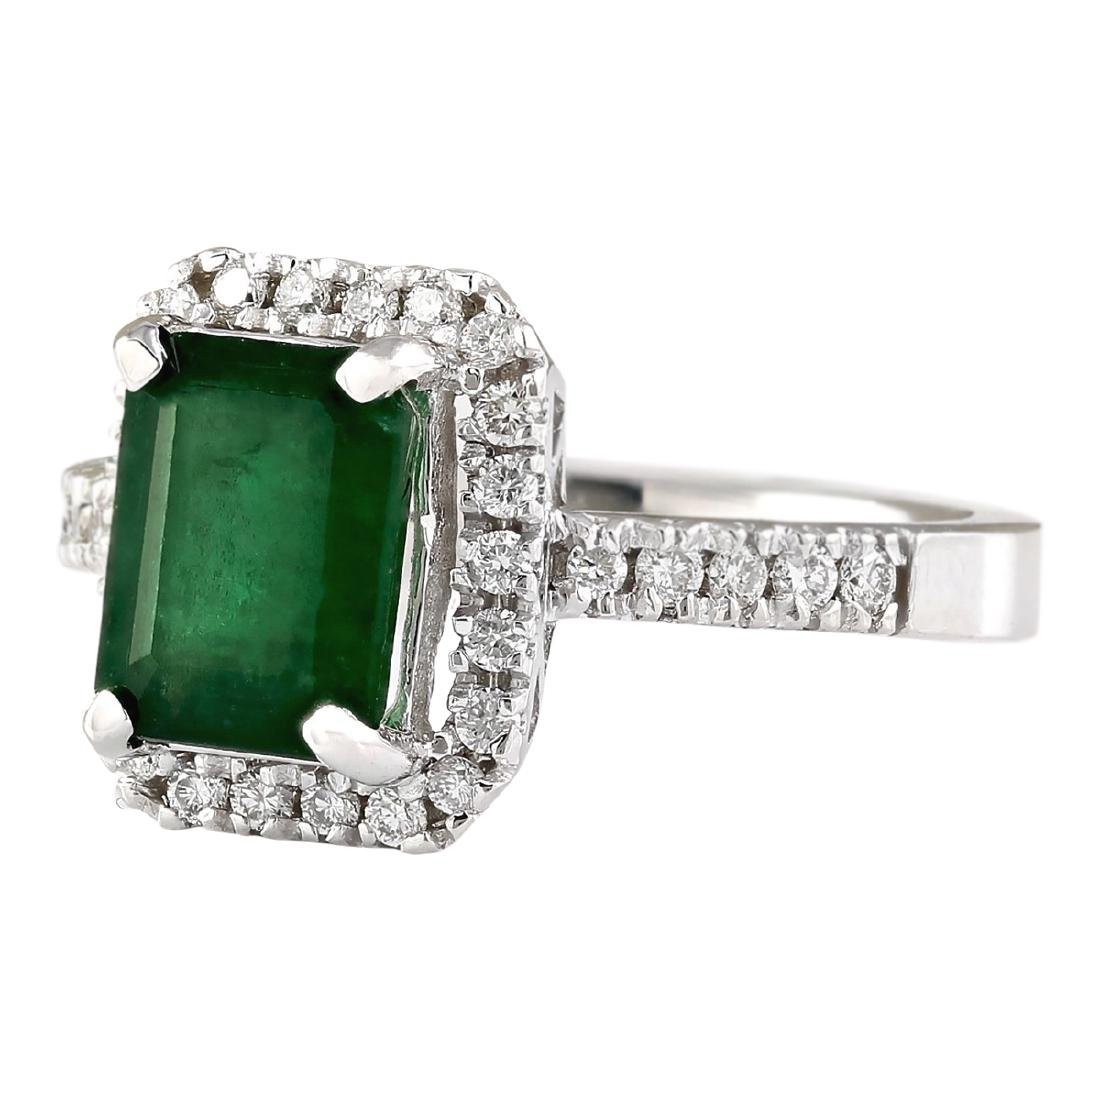 2.64 CTW Natural Emerald And Diamond Ring In 18K White - 2